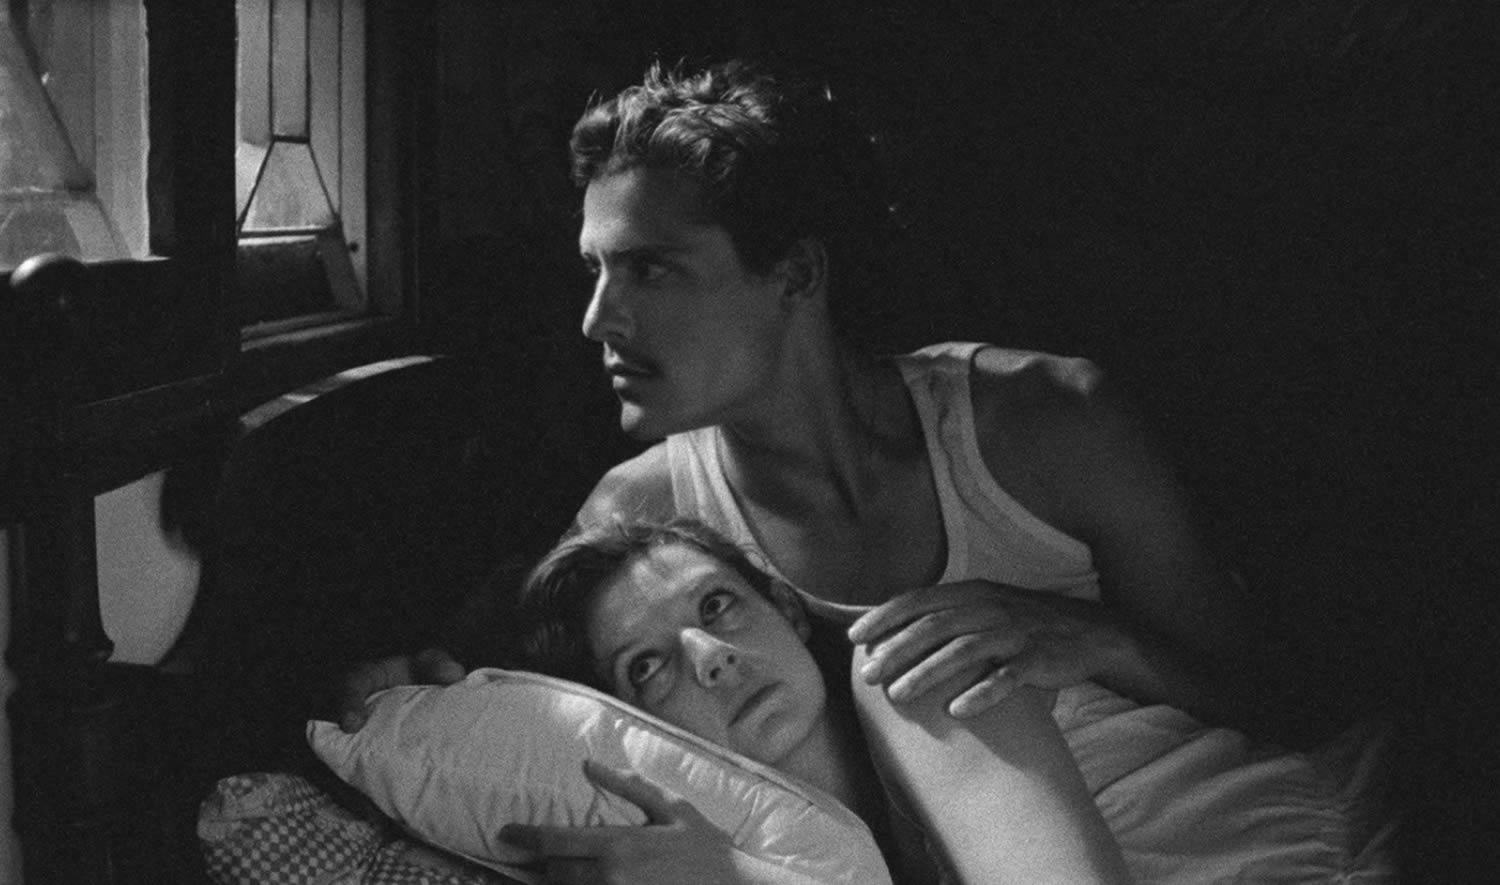 couple in bed, black and white scene in tabu